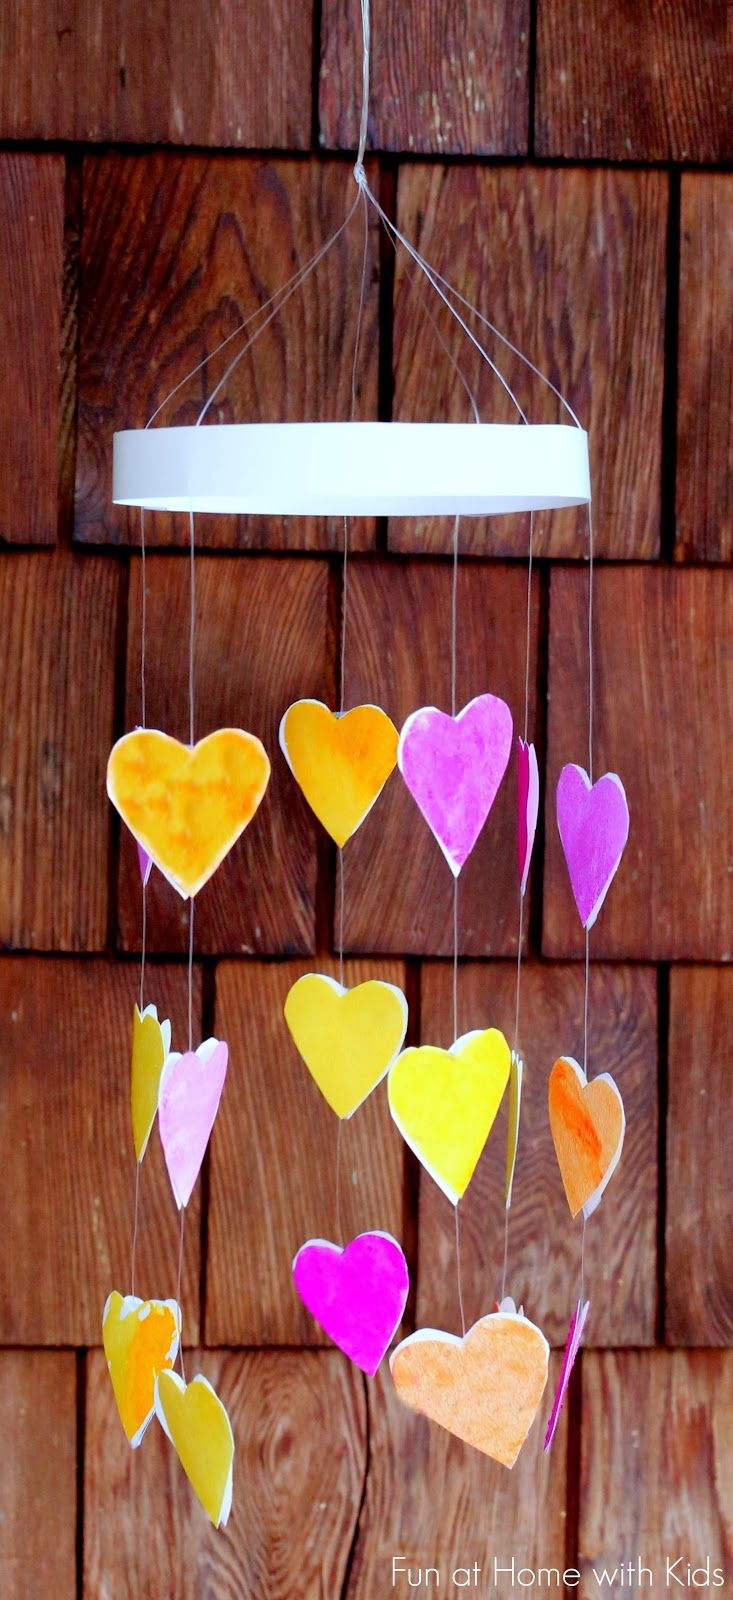 Crystallized Heart Mobile for Kids from Fun at Home with Kids